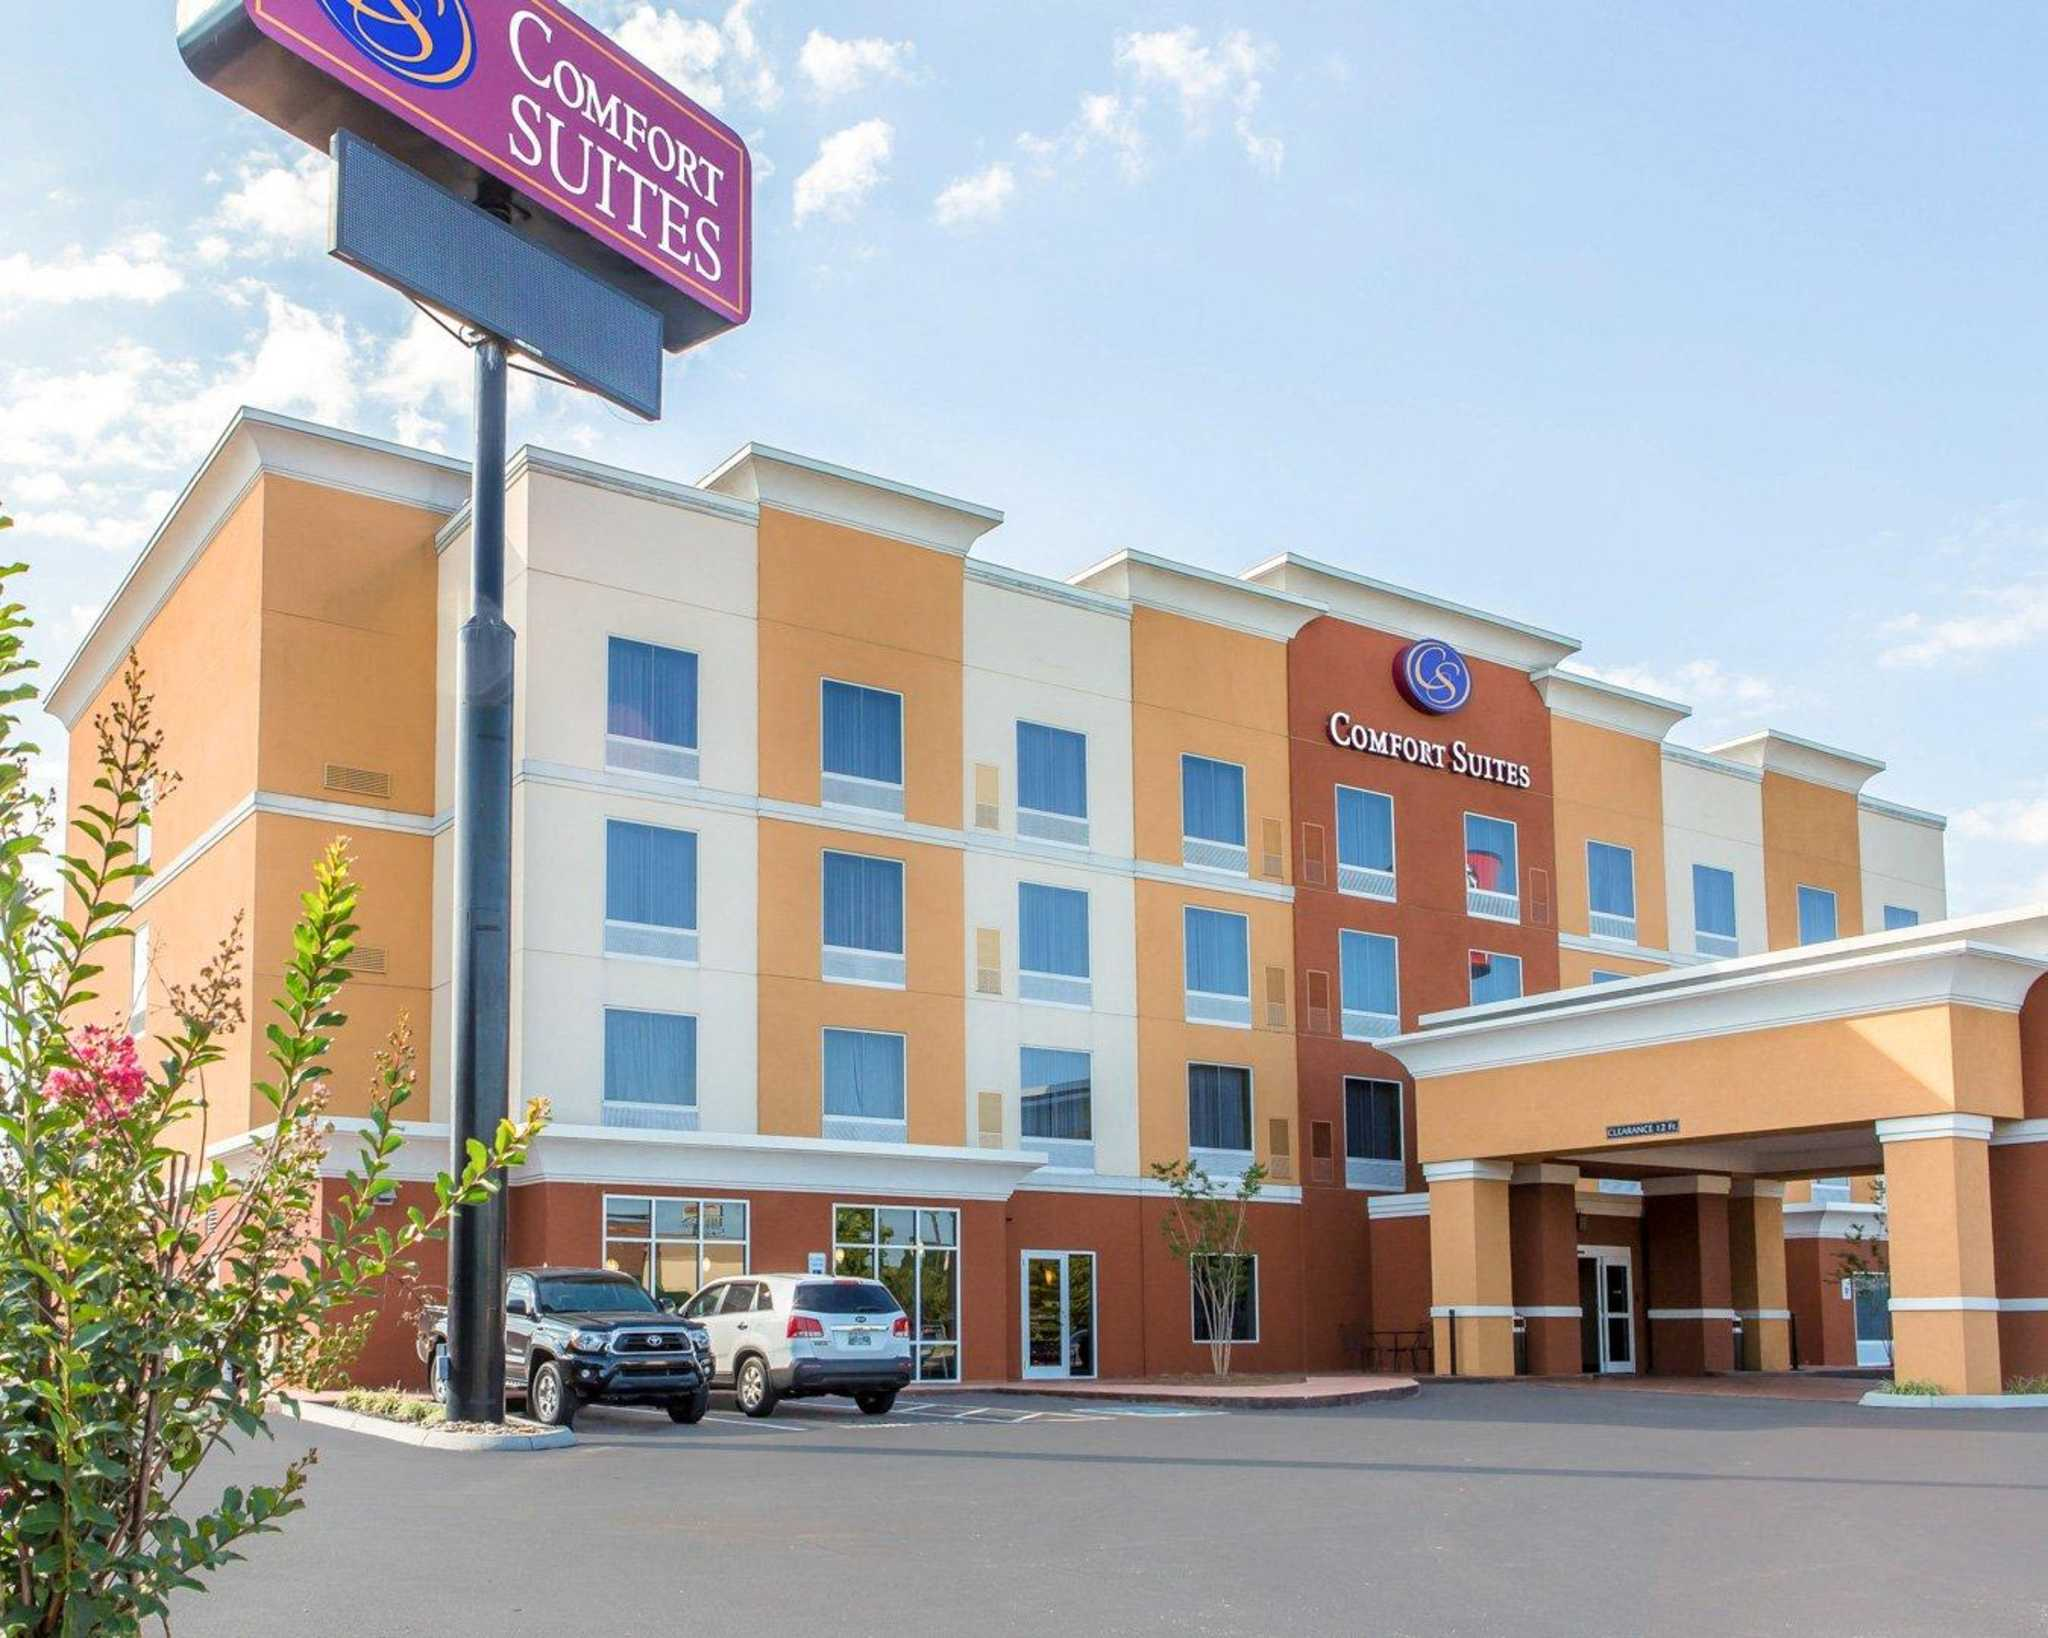 Comfort Suites East in Knoxville, TN - (865) 246-2...